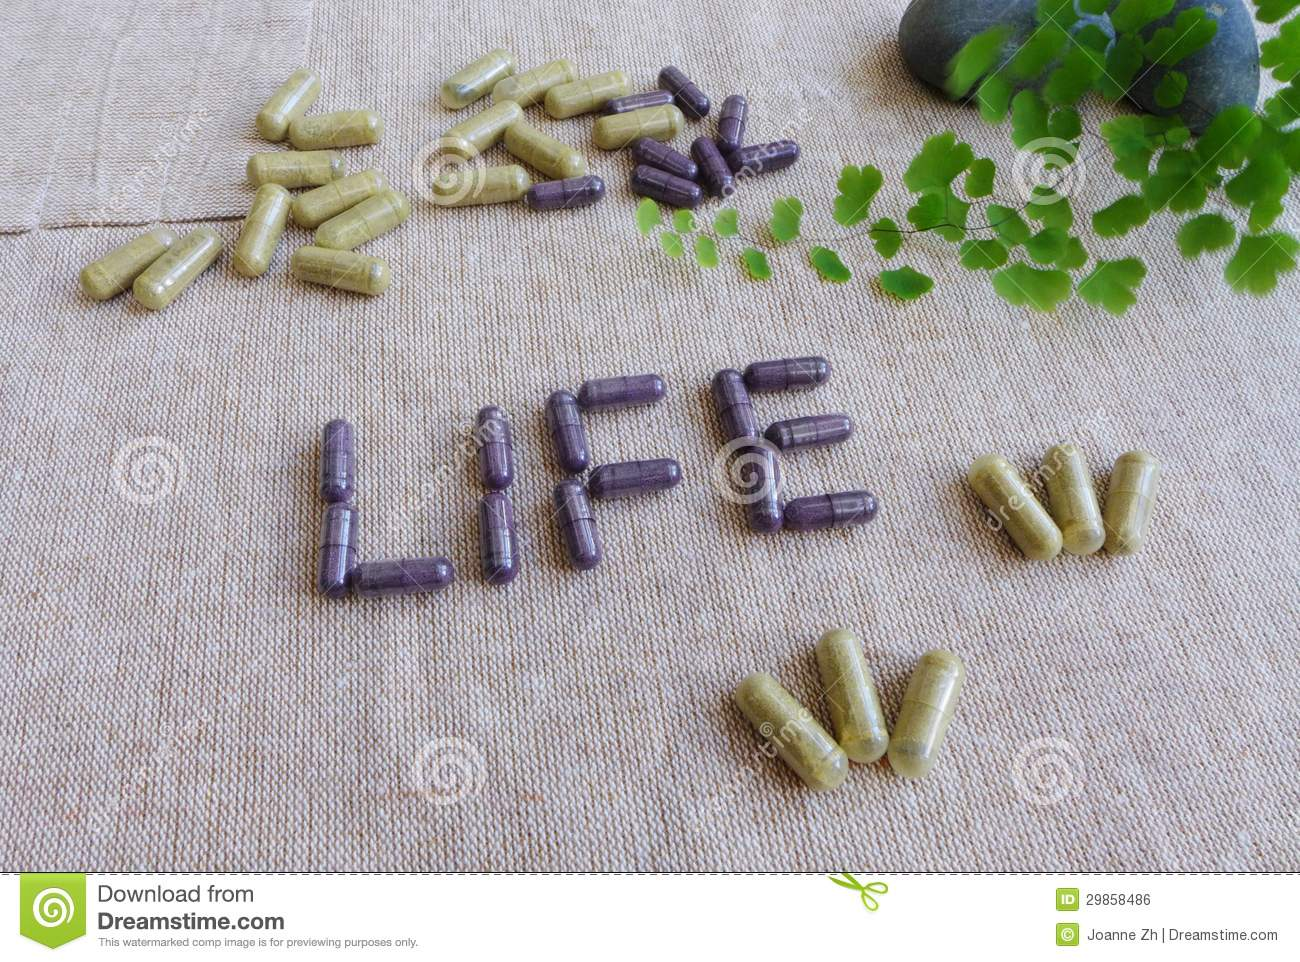 Supplements for healthy life concept